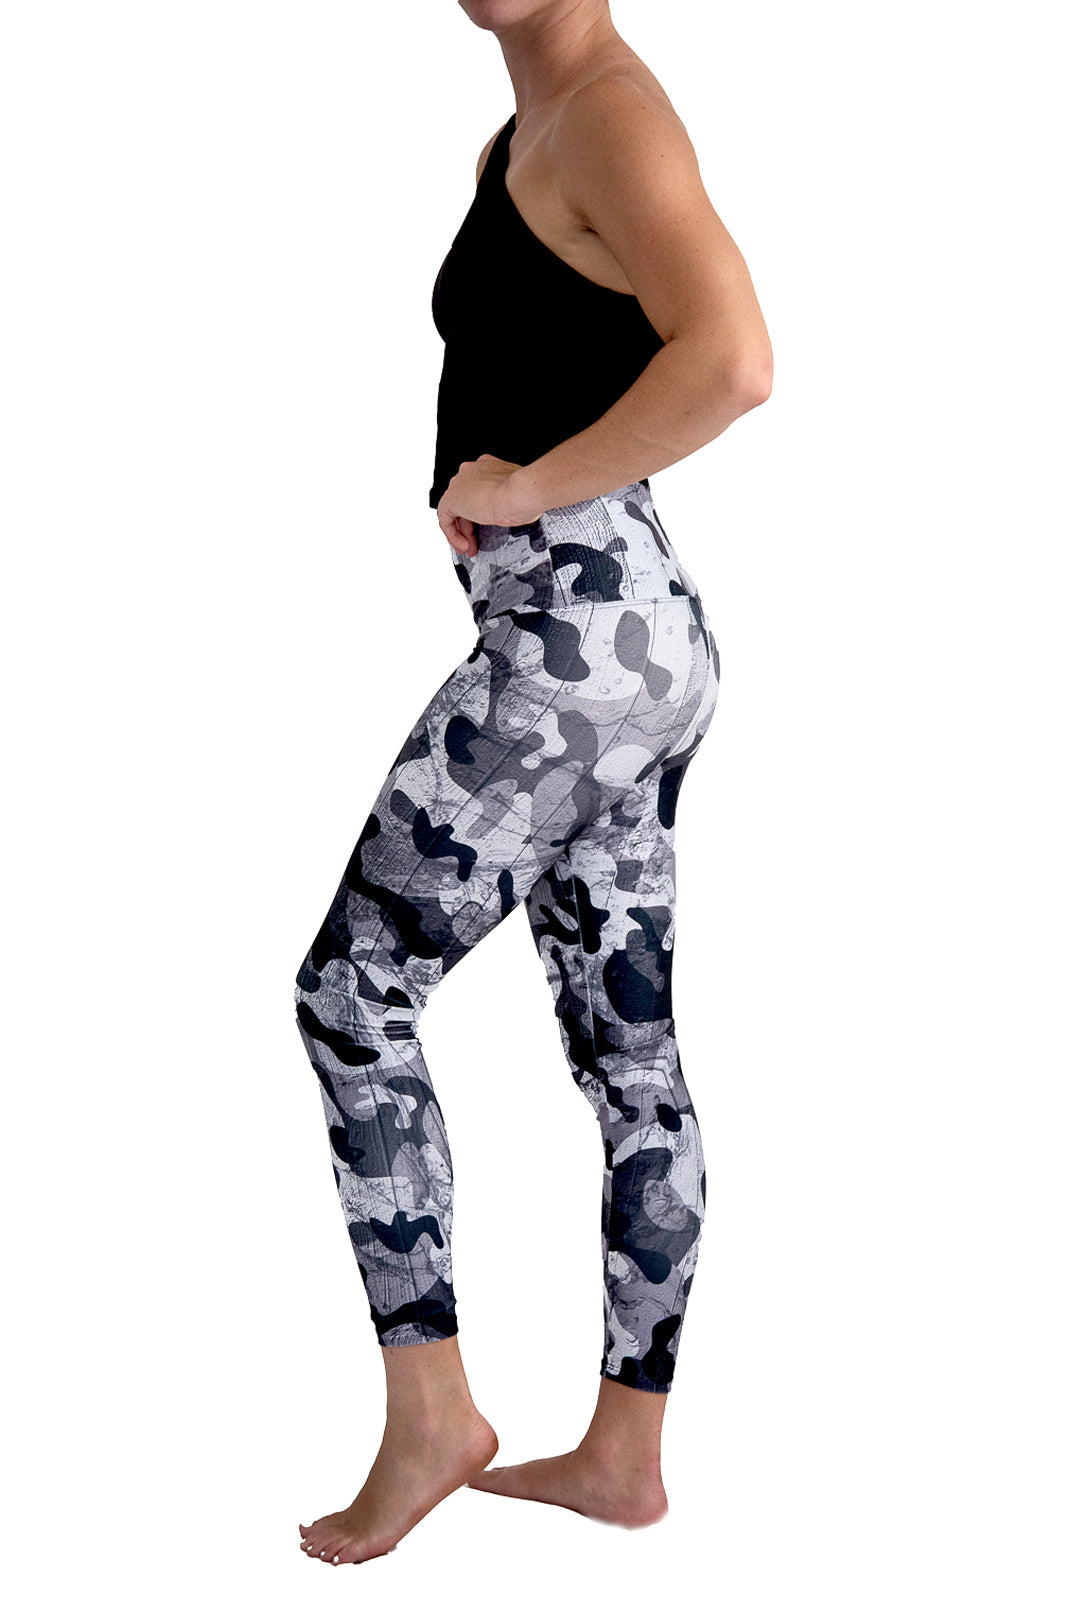 Deborah the Camo King Yoga Pants